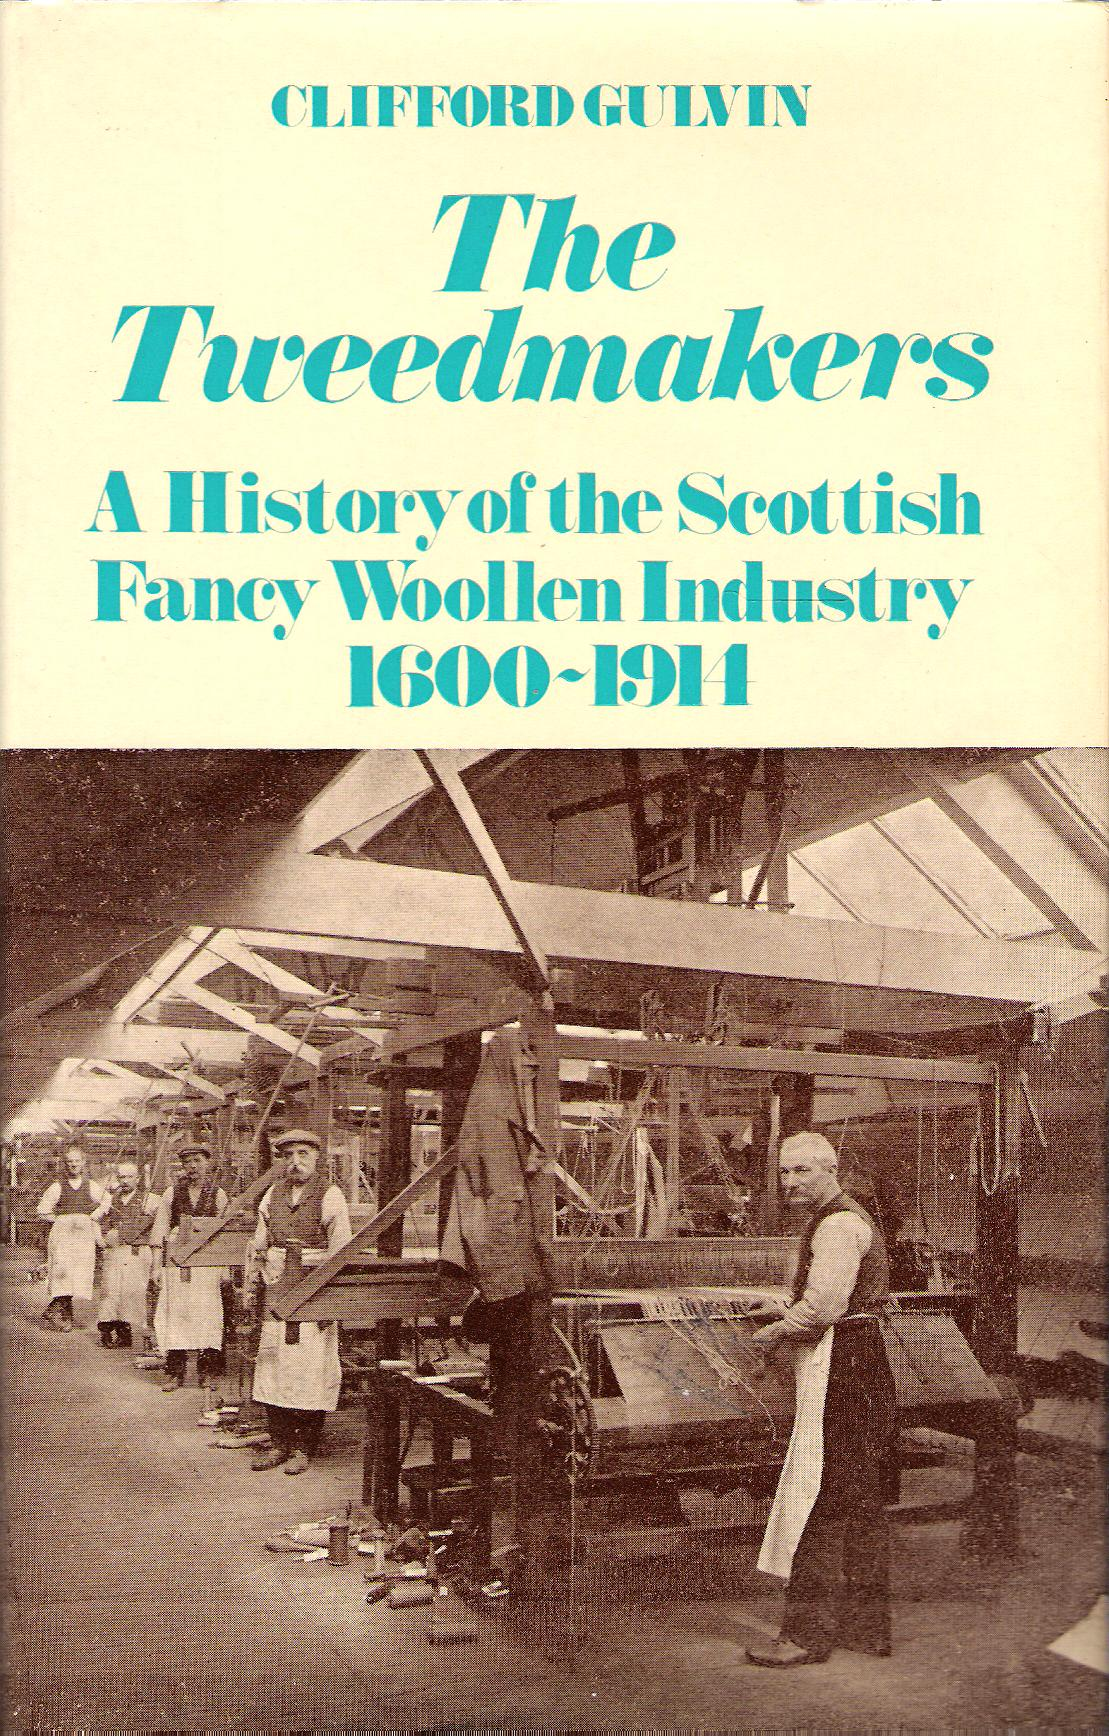 Image for The Tweedmakers: A History of the Scottish Fancy Woollen Industry 1600-1914.